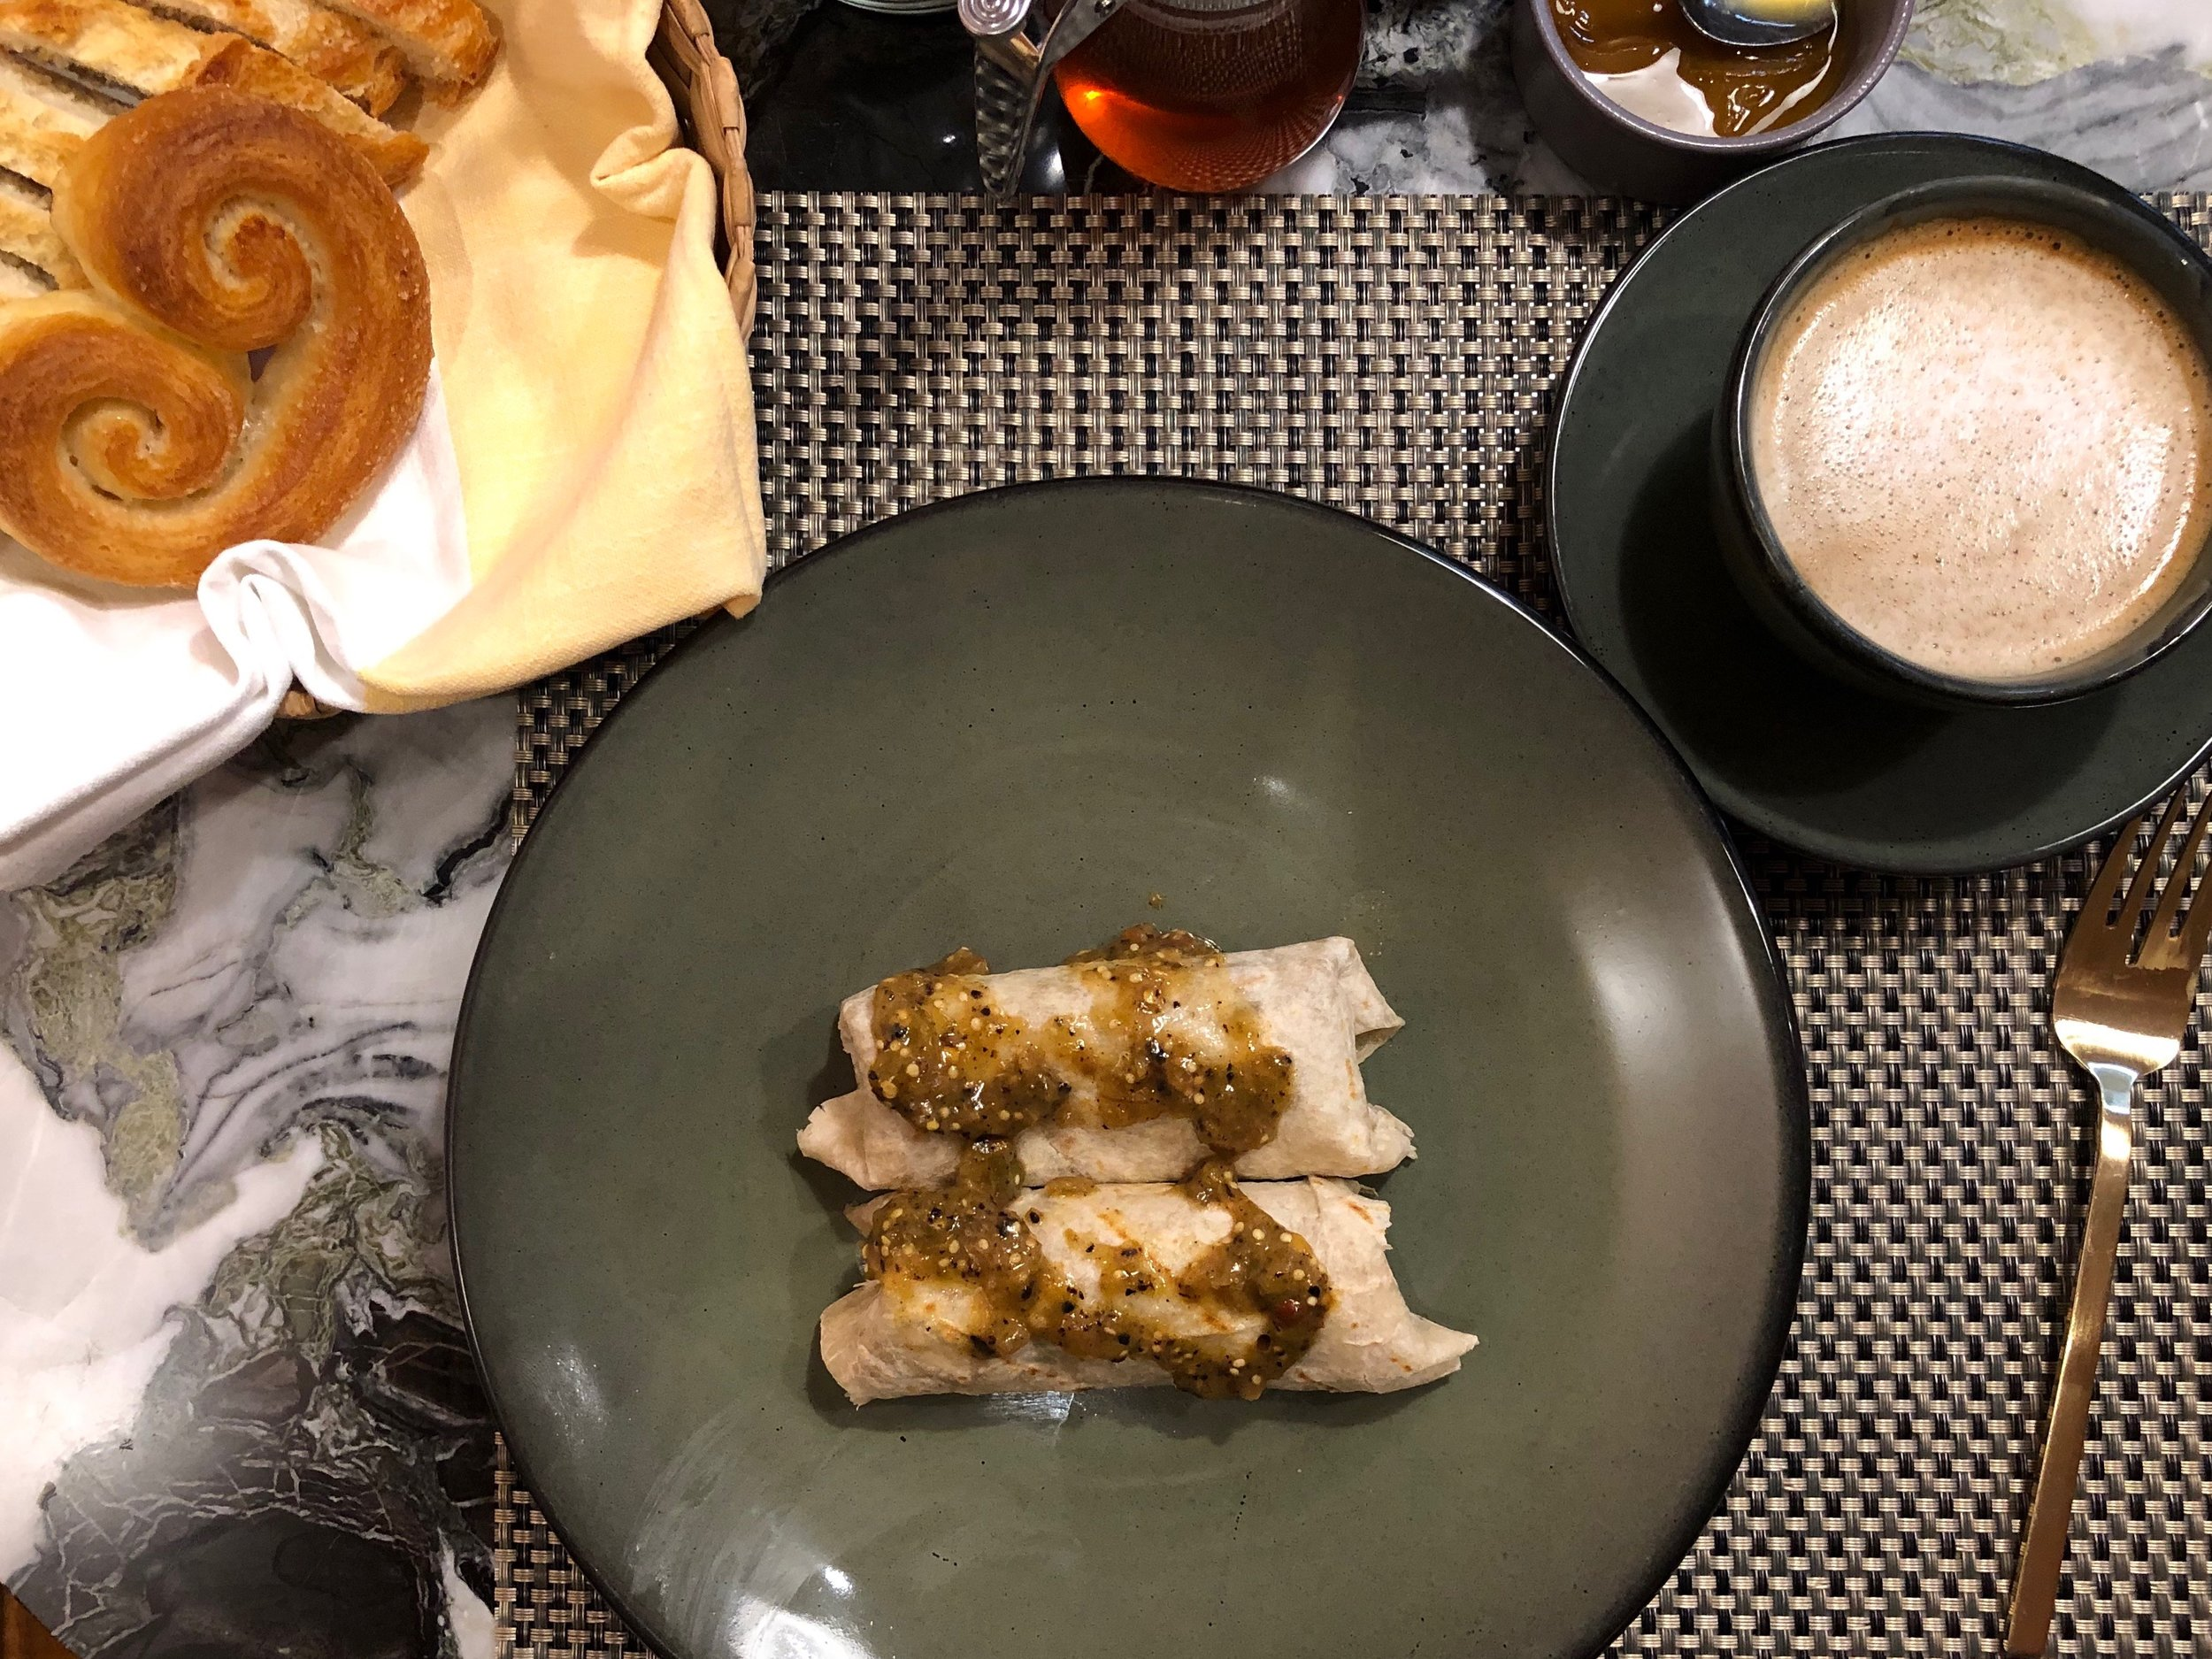 """The curlicue pastries they call orejas, or """"ears,"""" a main dish (this one with cecina, rehydrated salted dried beef) and coffee"""